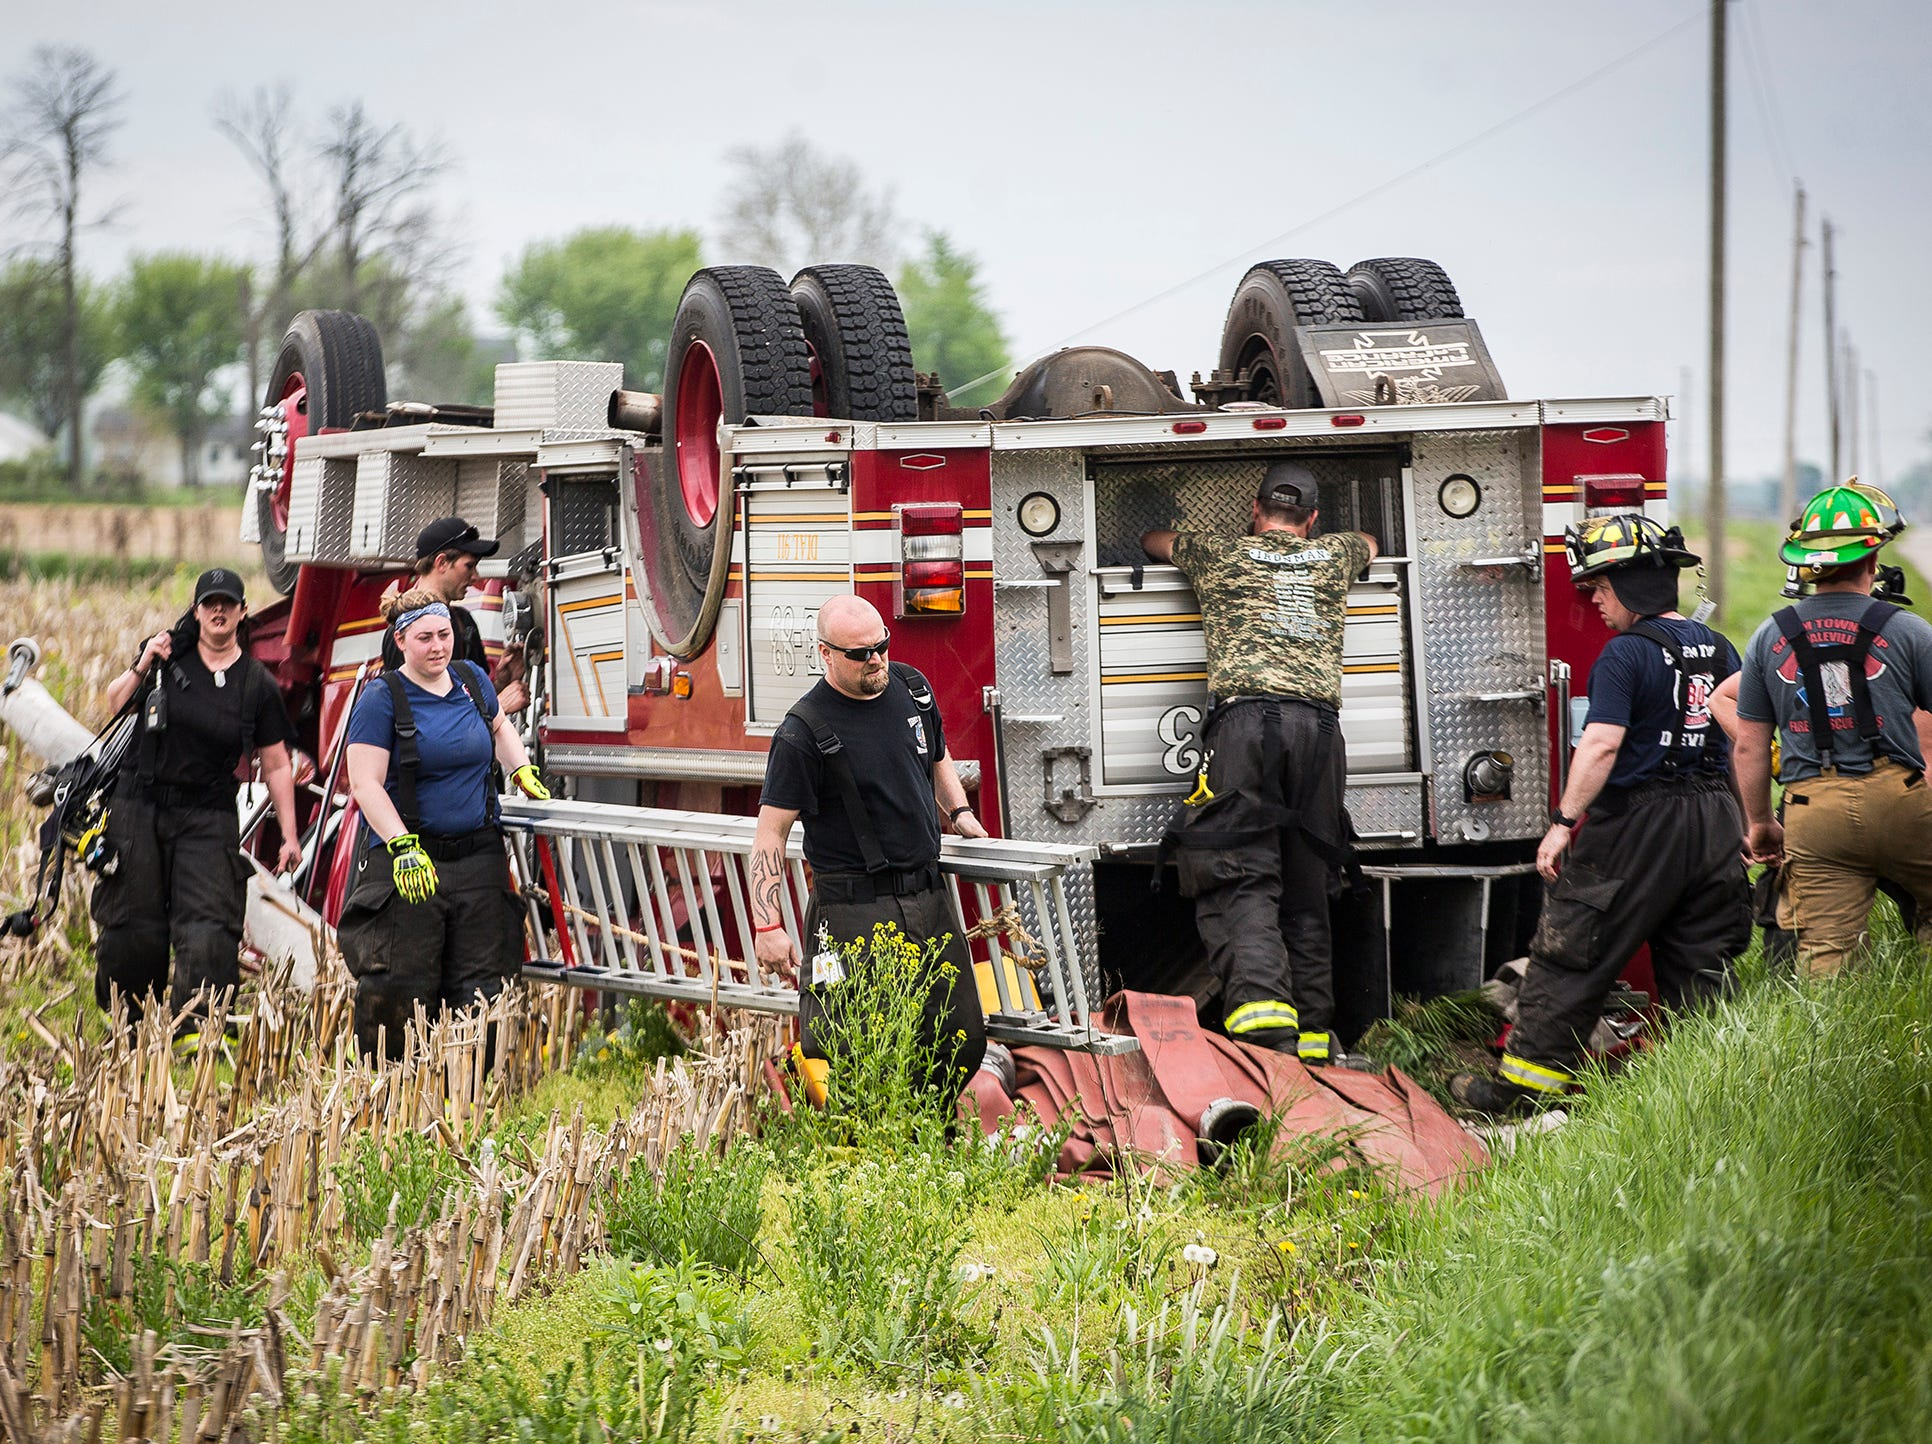 State and county police as well as other firefighters respond at the scene of a rollover wreck involving a Salem Township firetruck on S. 300 W. near the Henry County line at around 3:45 p.m. Saturday. According to police, the firetruck was in the vicinity of the scene of a field fire which other firefighters had quelled at the time the accident occurred. Two firefighters were trapped inside the rolled vehicle by live electrical wires which had become entangled with the truck. The trapped firefighters were extricated and transported to the hospital with non-life threatening injuries. The incident is being investigated.